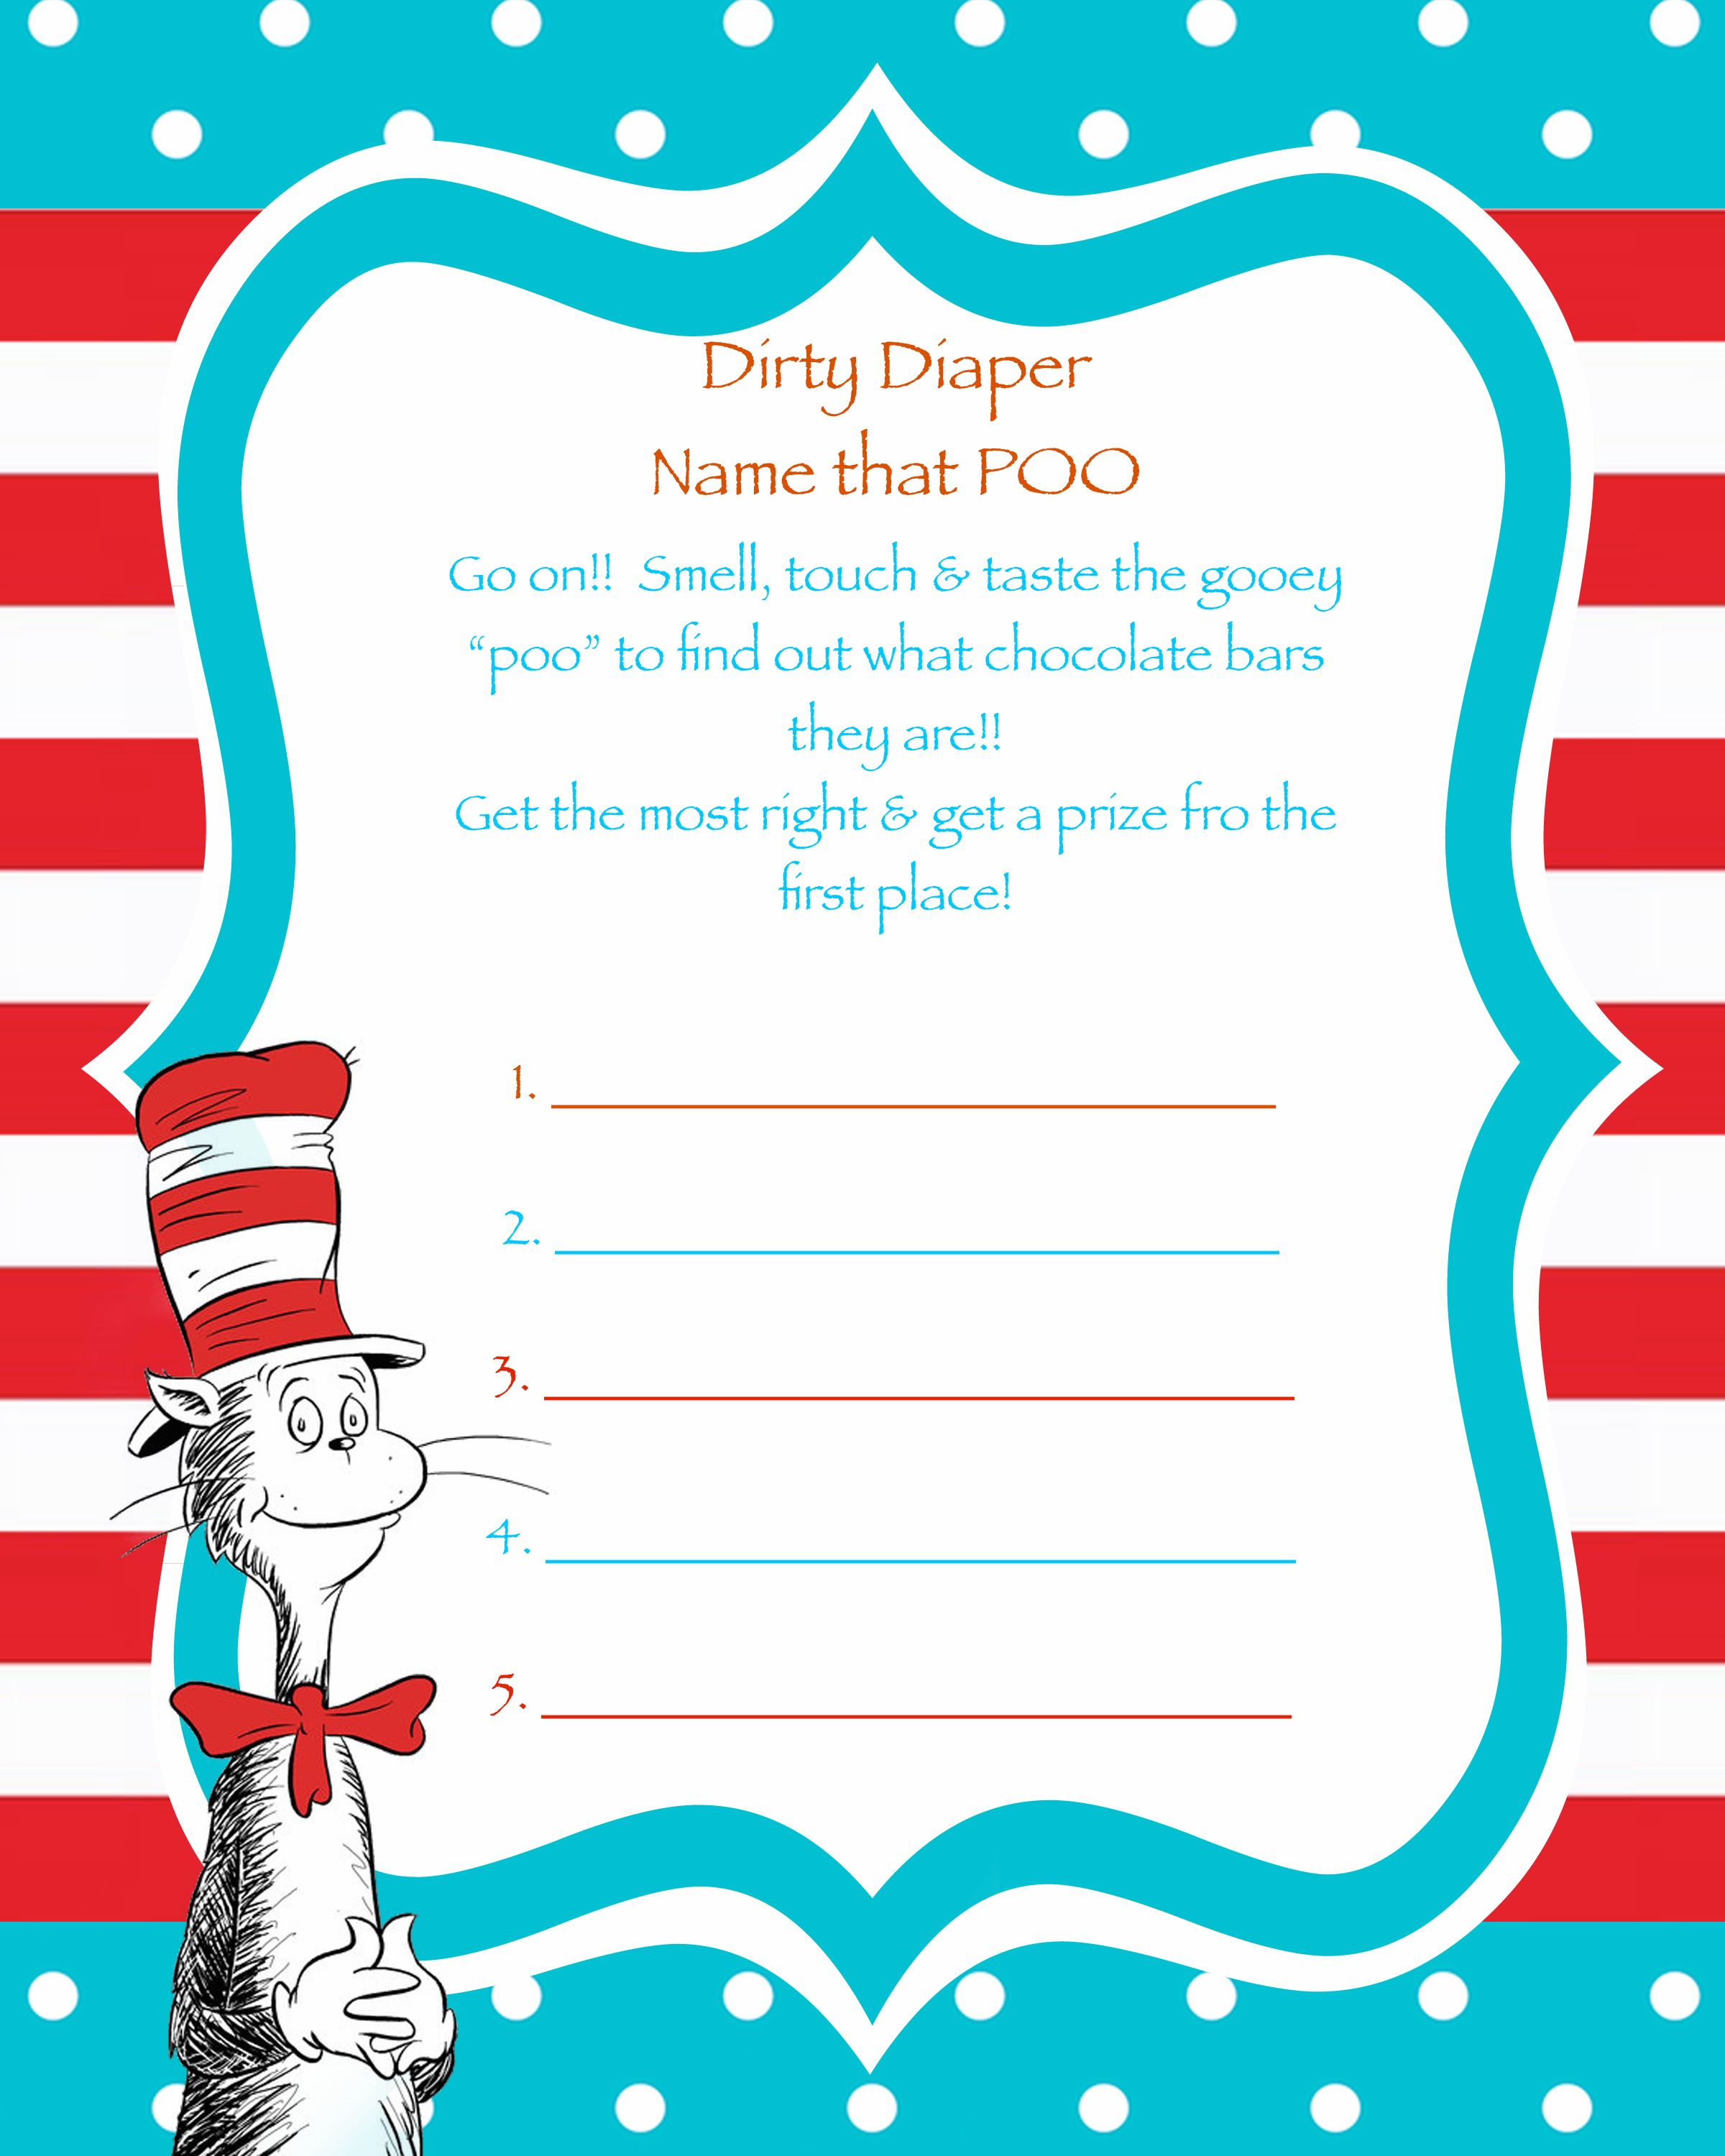 Dr. Sseuss Baby shower game- Dirty Diaper